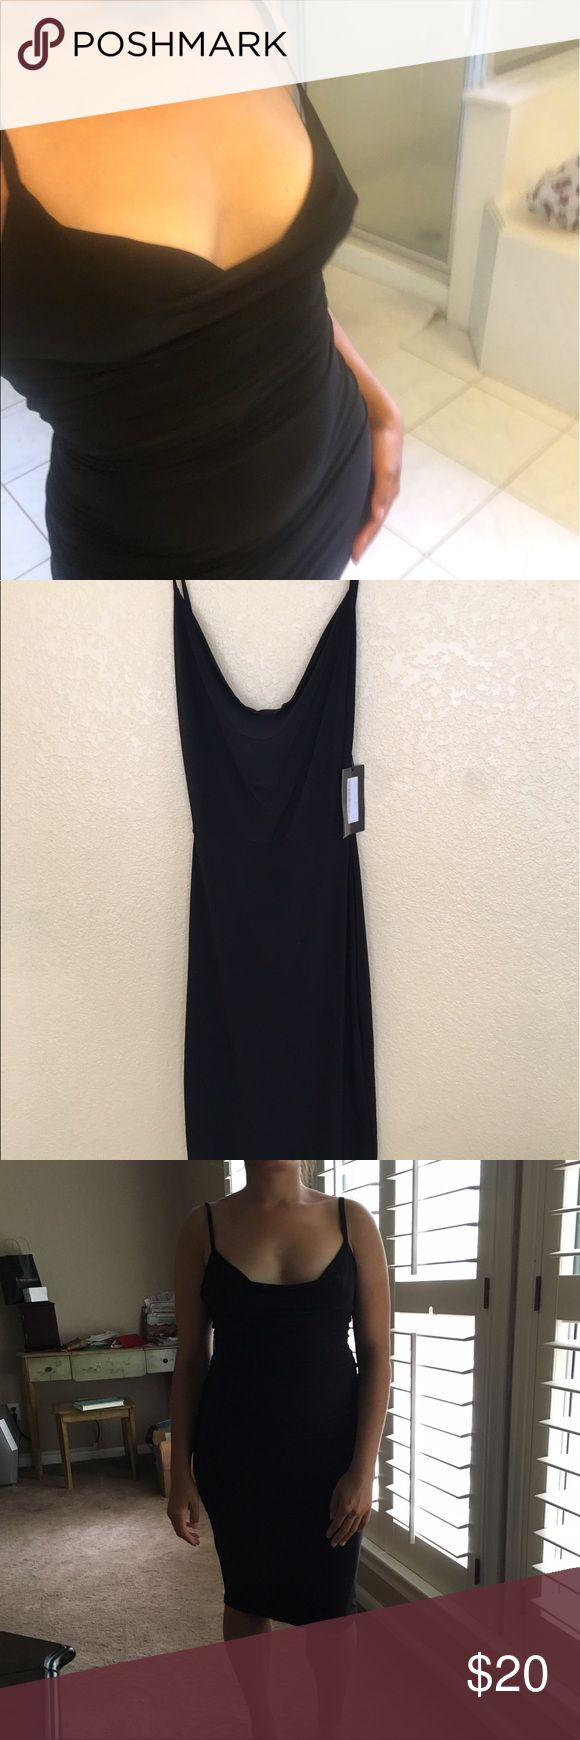 Sexy Black Dress Boohoo NWT Brand new with tags super flattering on your curves size 4 US Nasty Gal Dresses Midi